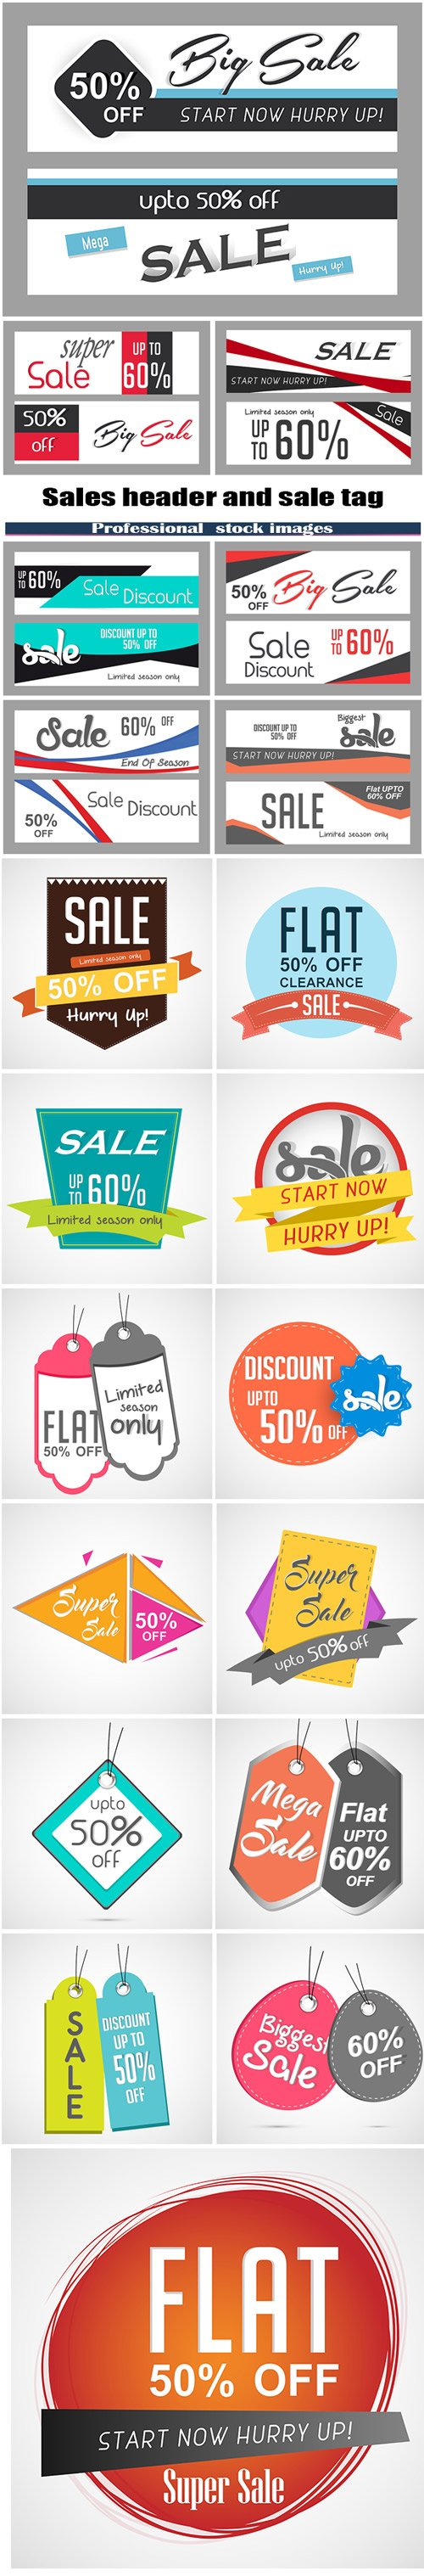 Sales header and sale tag design